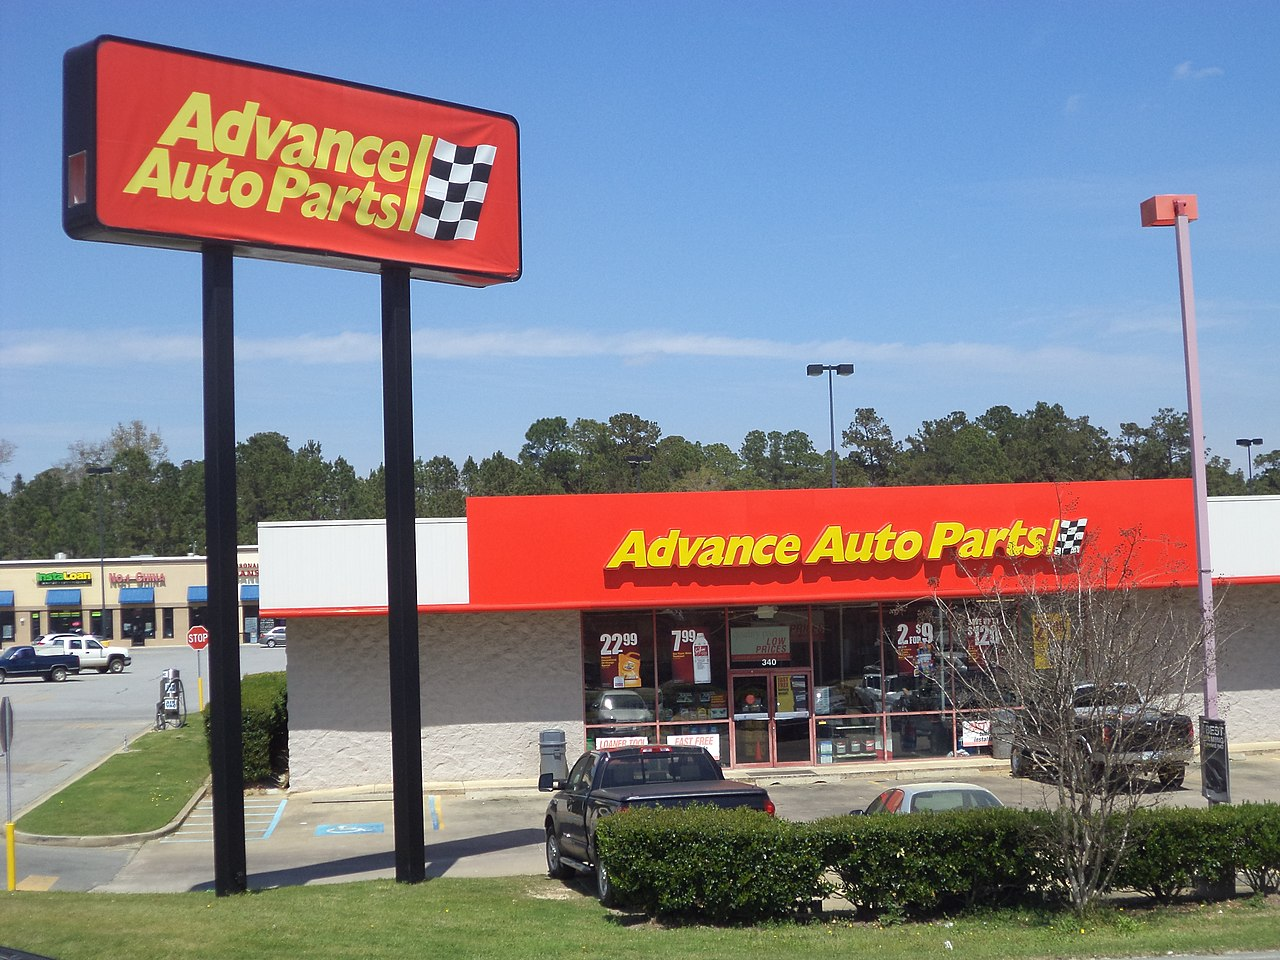 About Advance Auto Parts in the United States the United States Headquartered in Roanoke, Va., Advance Auto Parts, Inc., the largest automotive aftermarket parts provider in North America, serves both the professional installer and do-it-yourself customers.